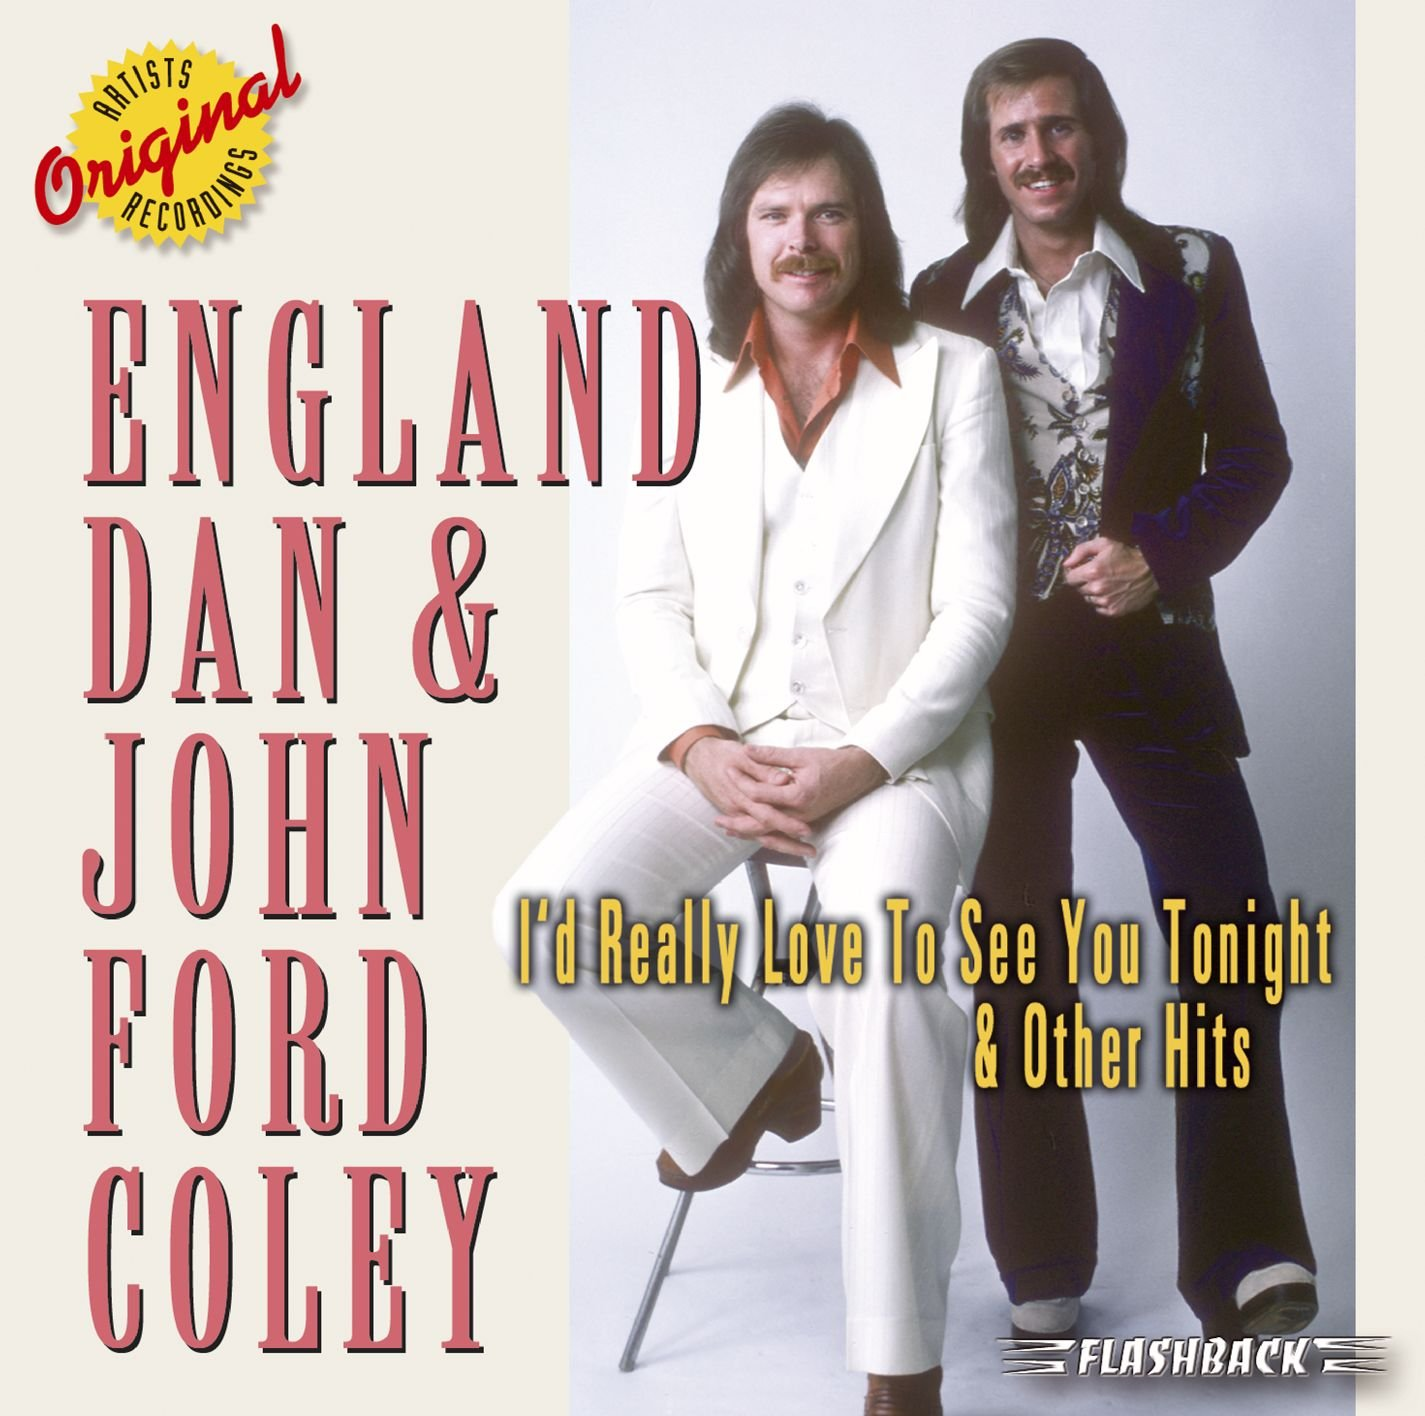 England dan john ford coley i d really love to see you tonight and other hits amazon com music